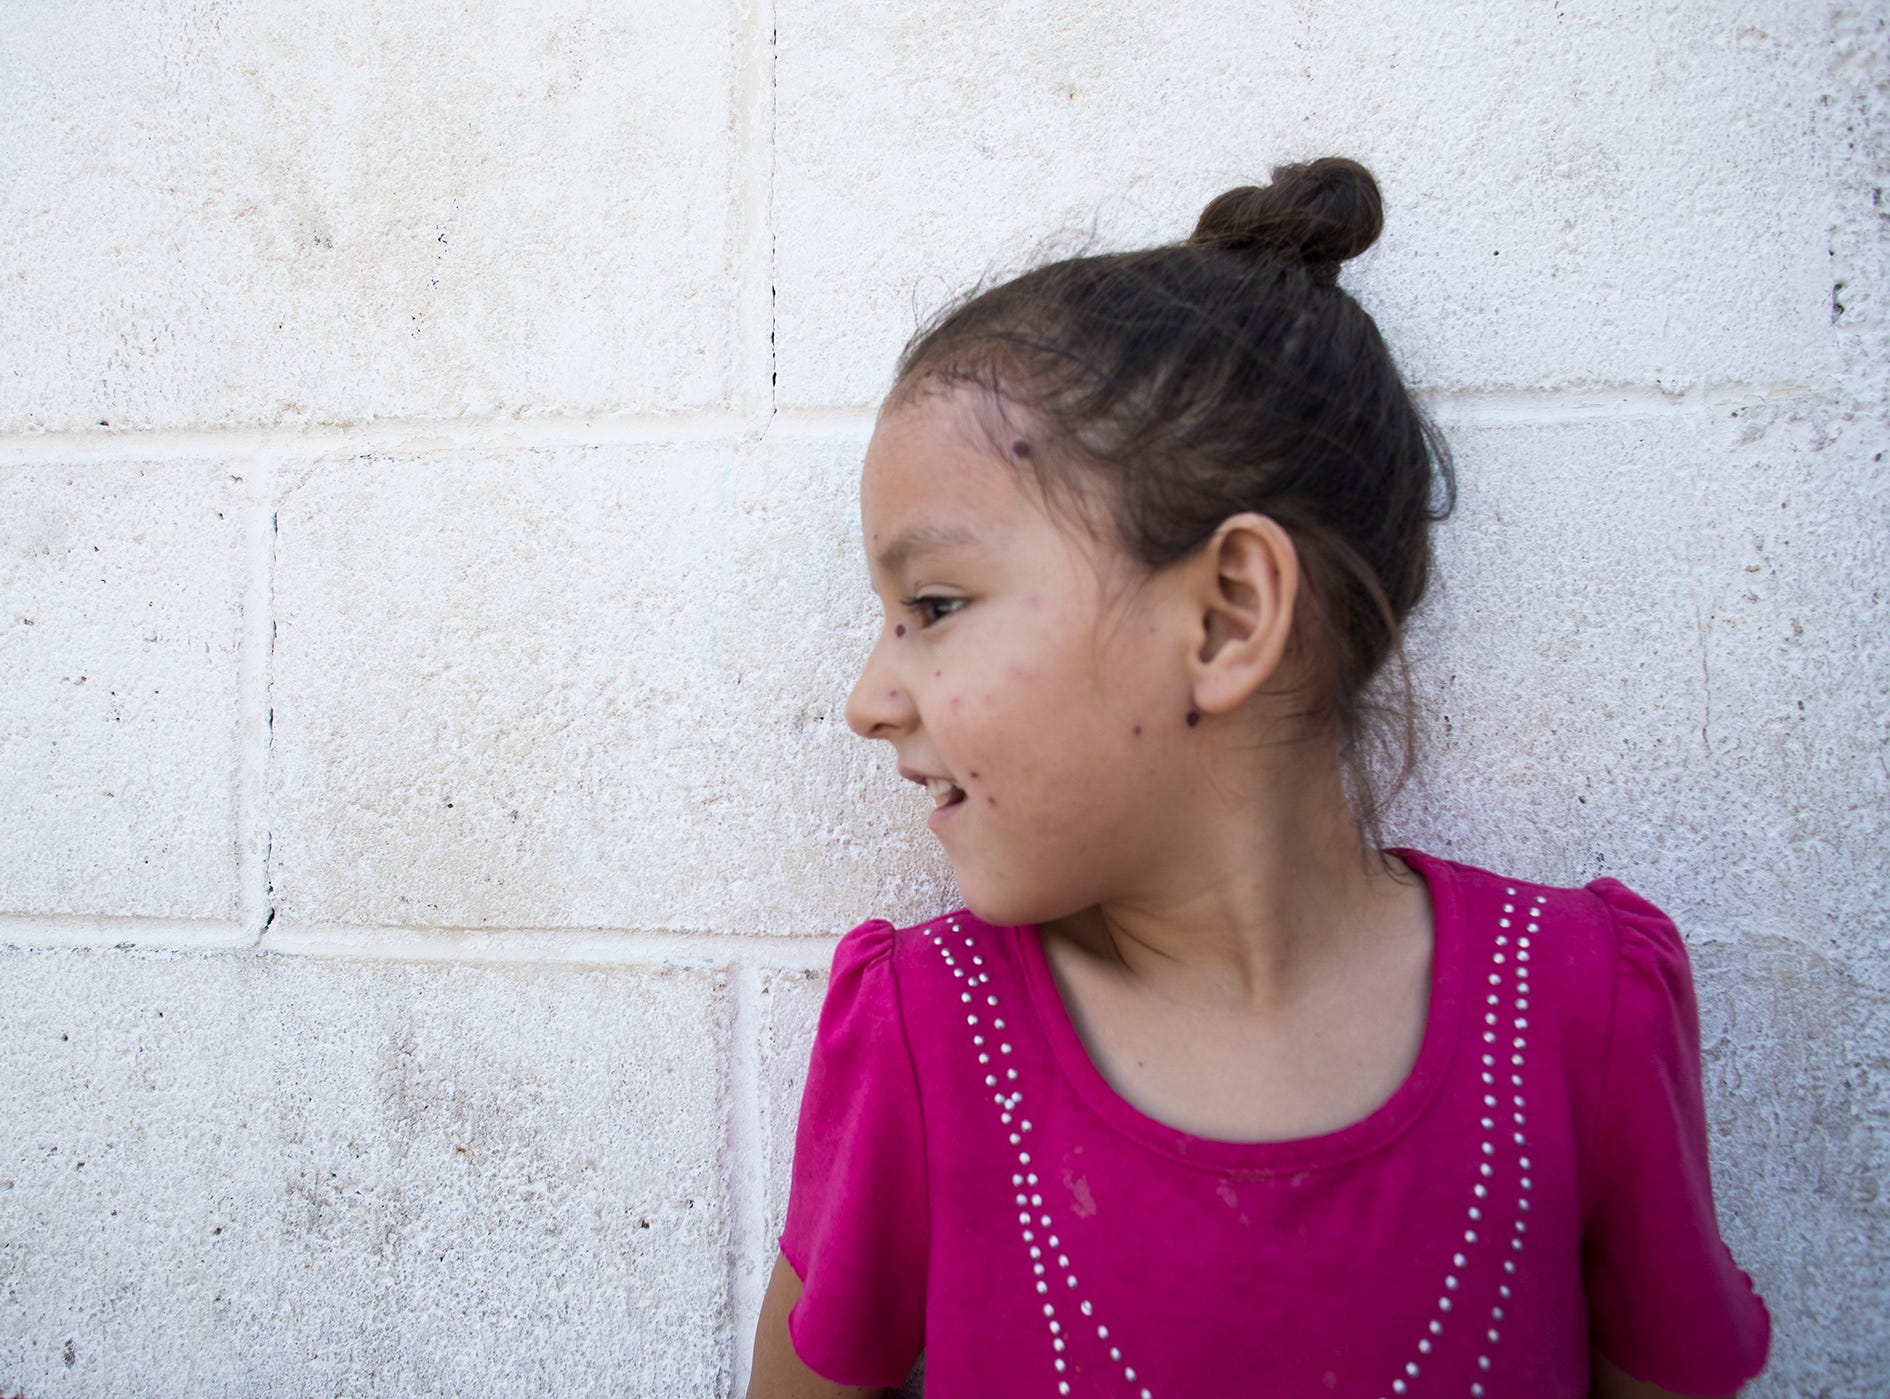 Maritza Salazar, 6, was infected with chickenpox at the Casa de Ayuda Alfa y Omega migrant shelter. Salazar was returned to Mexico with mother, Maricela Lopez, under the Migrant Protection Protocol asylum policy.